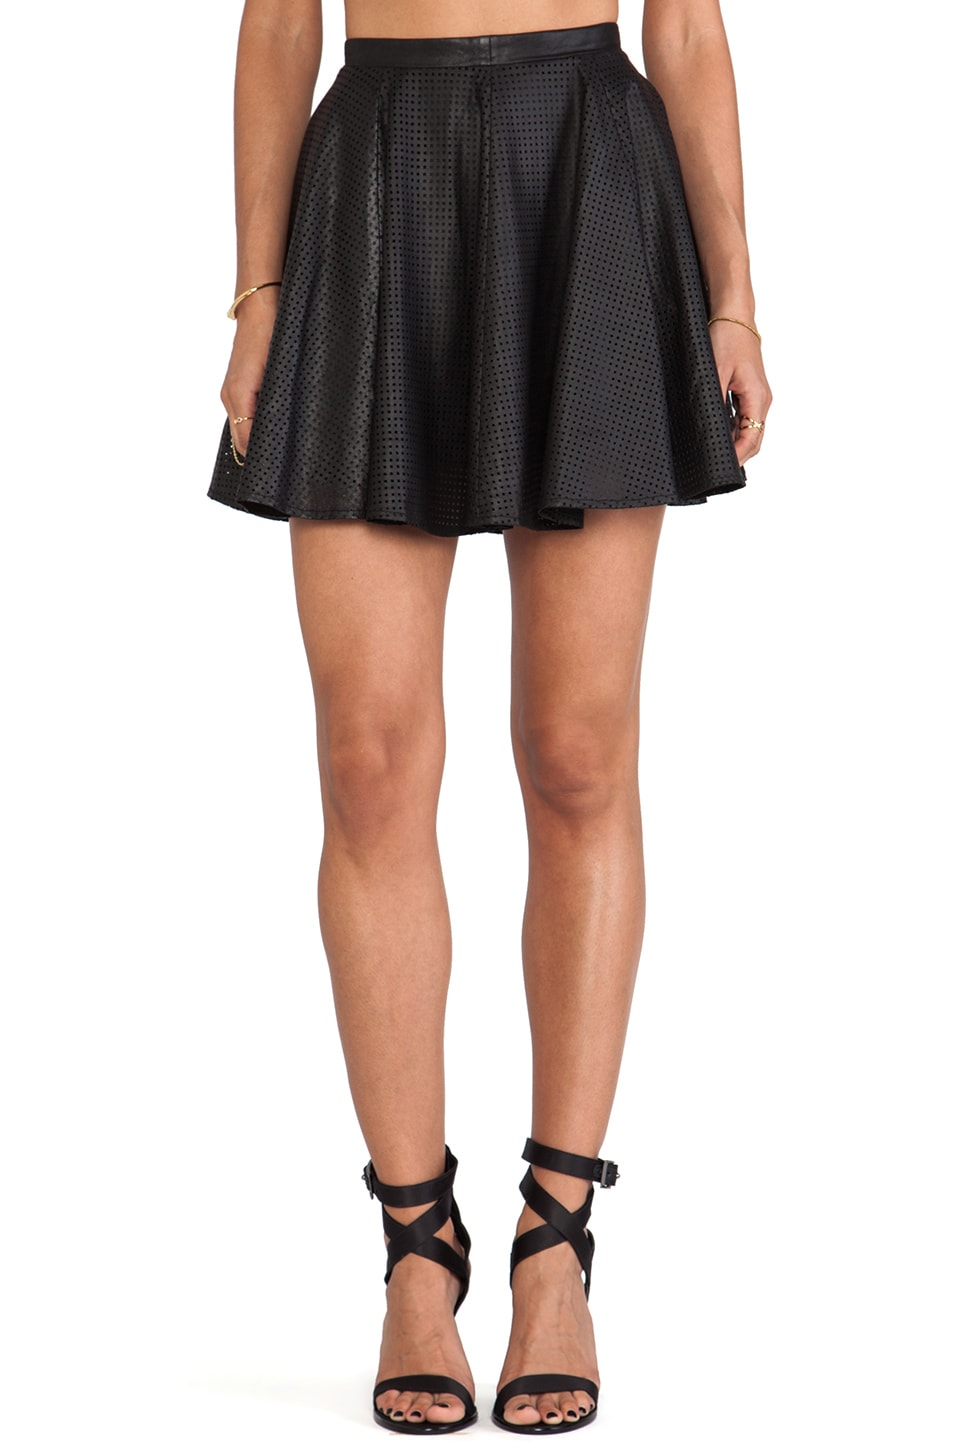 LAMARQUE Aria Skirt in Black